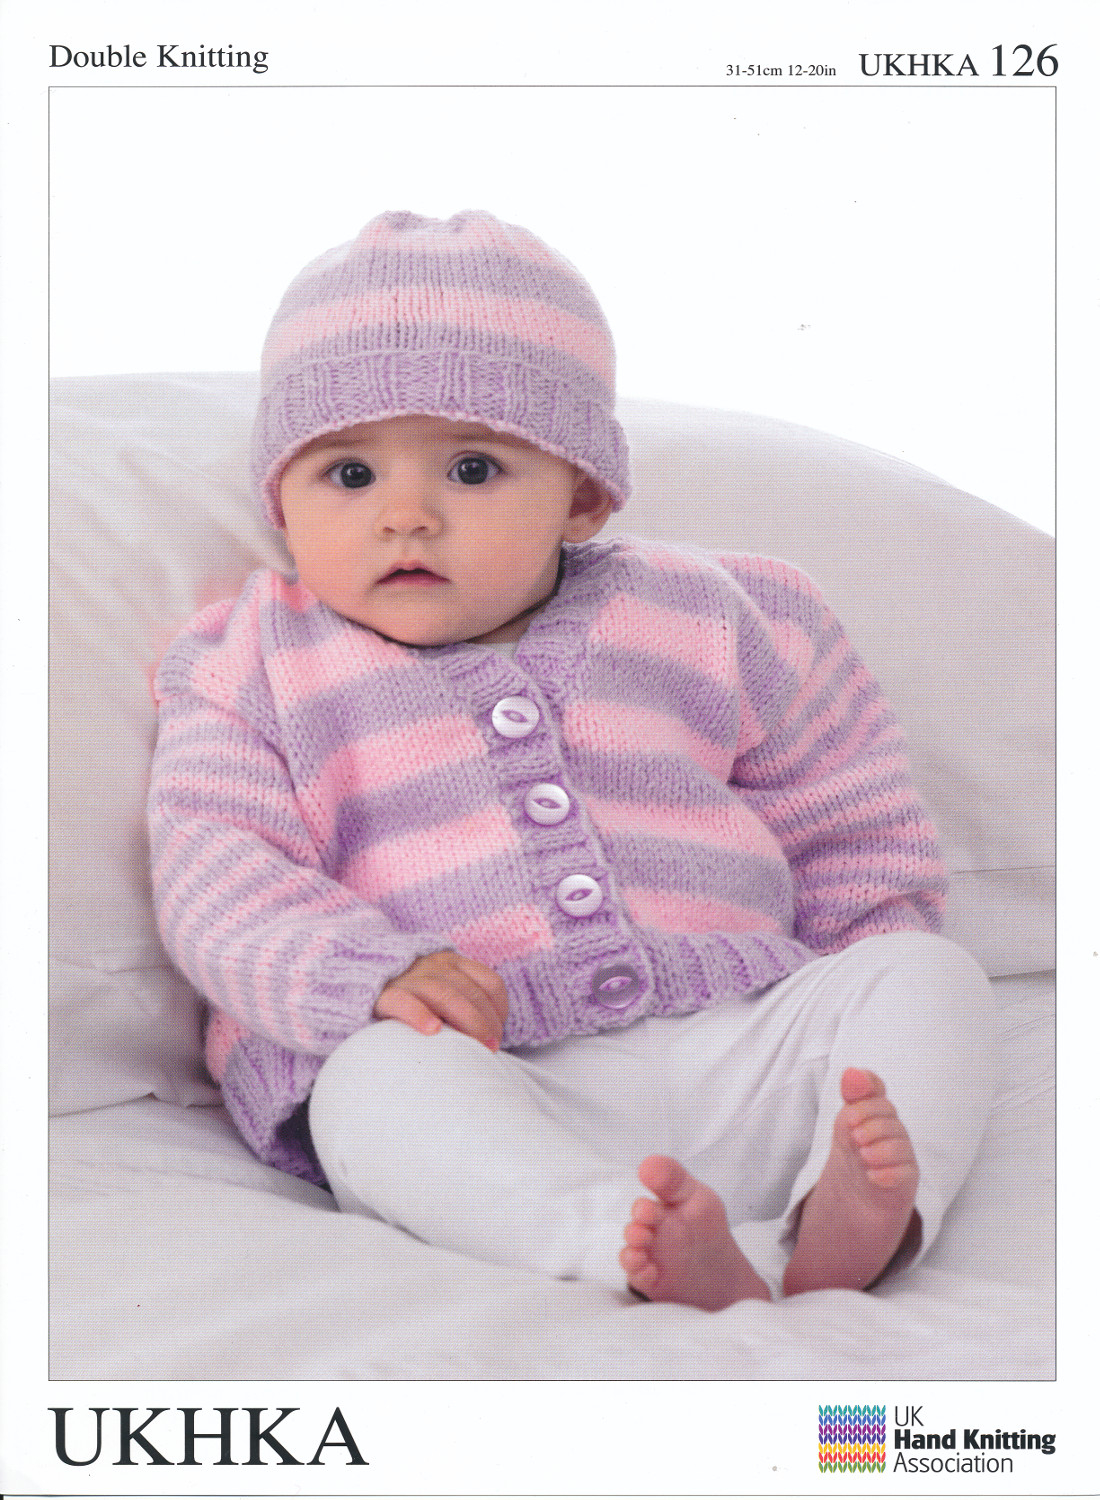 Free Baby Knitting Patterns Double Knit Double Knitting Dk Pattern Ba Long Sleeved Striped Cardigan Hat